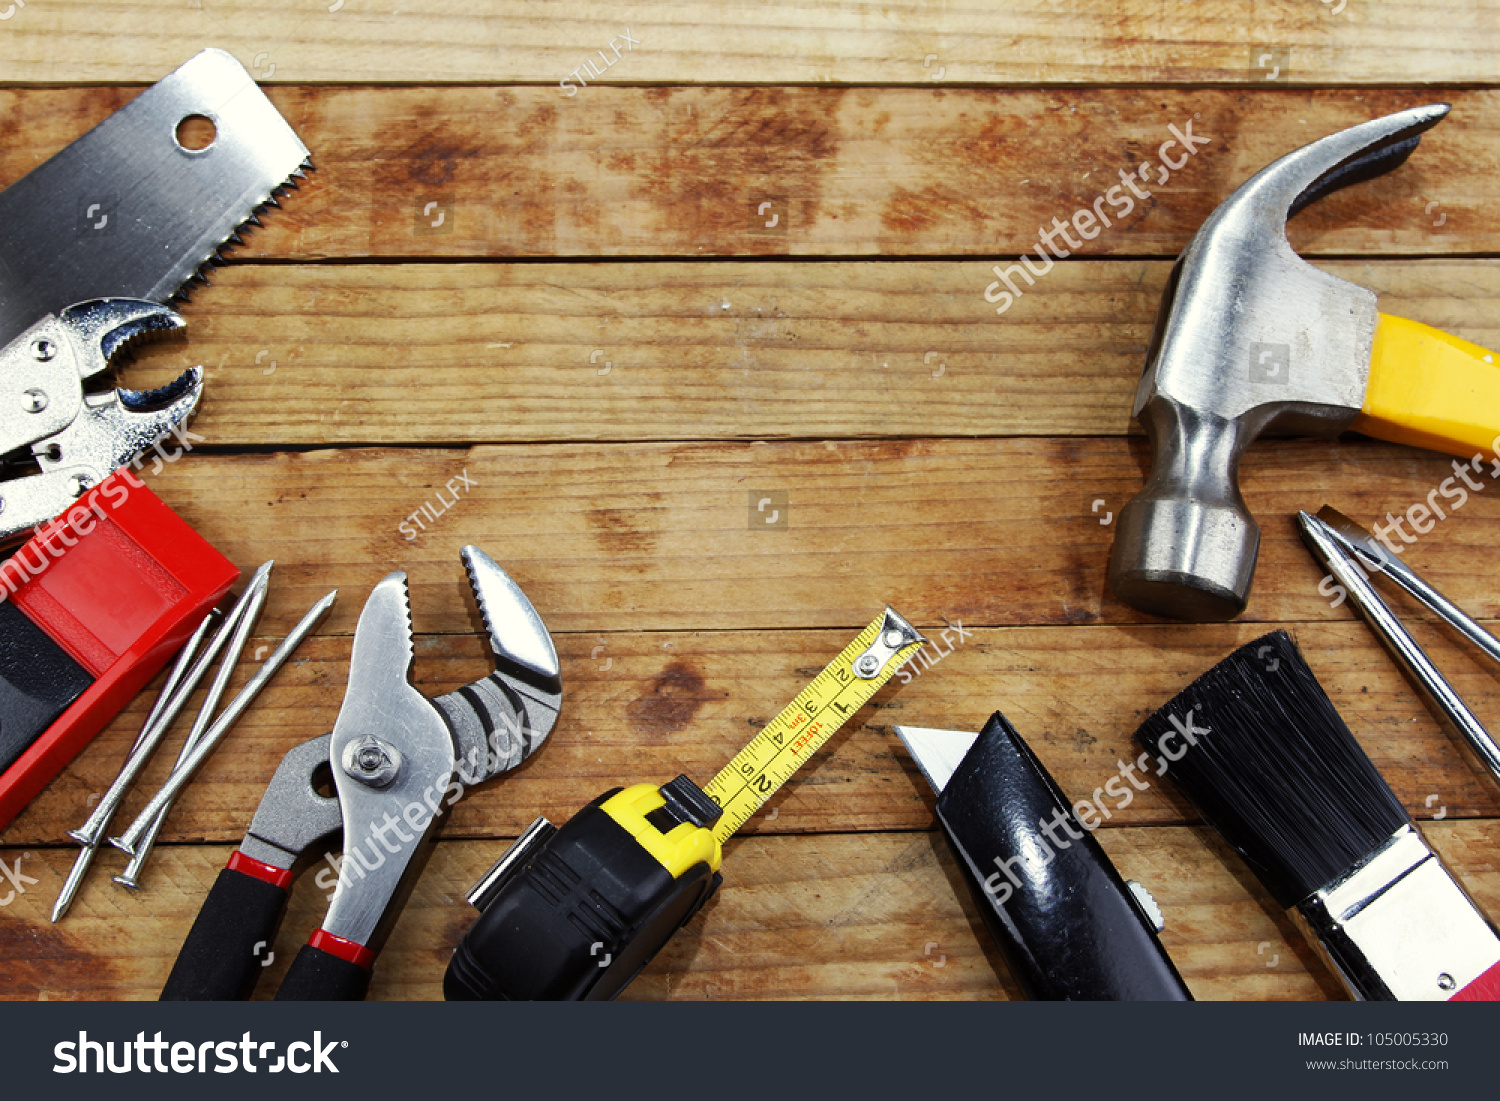 Closeup of assorted work tools on wood #105005330